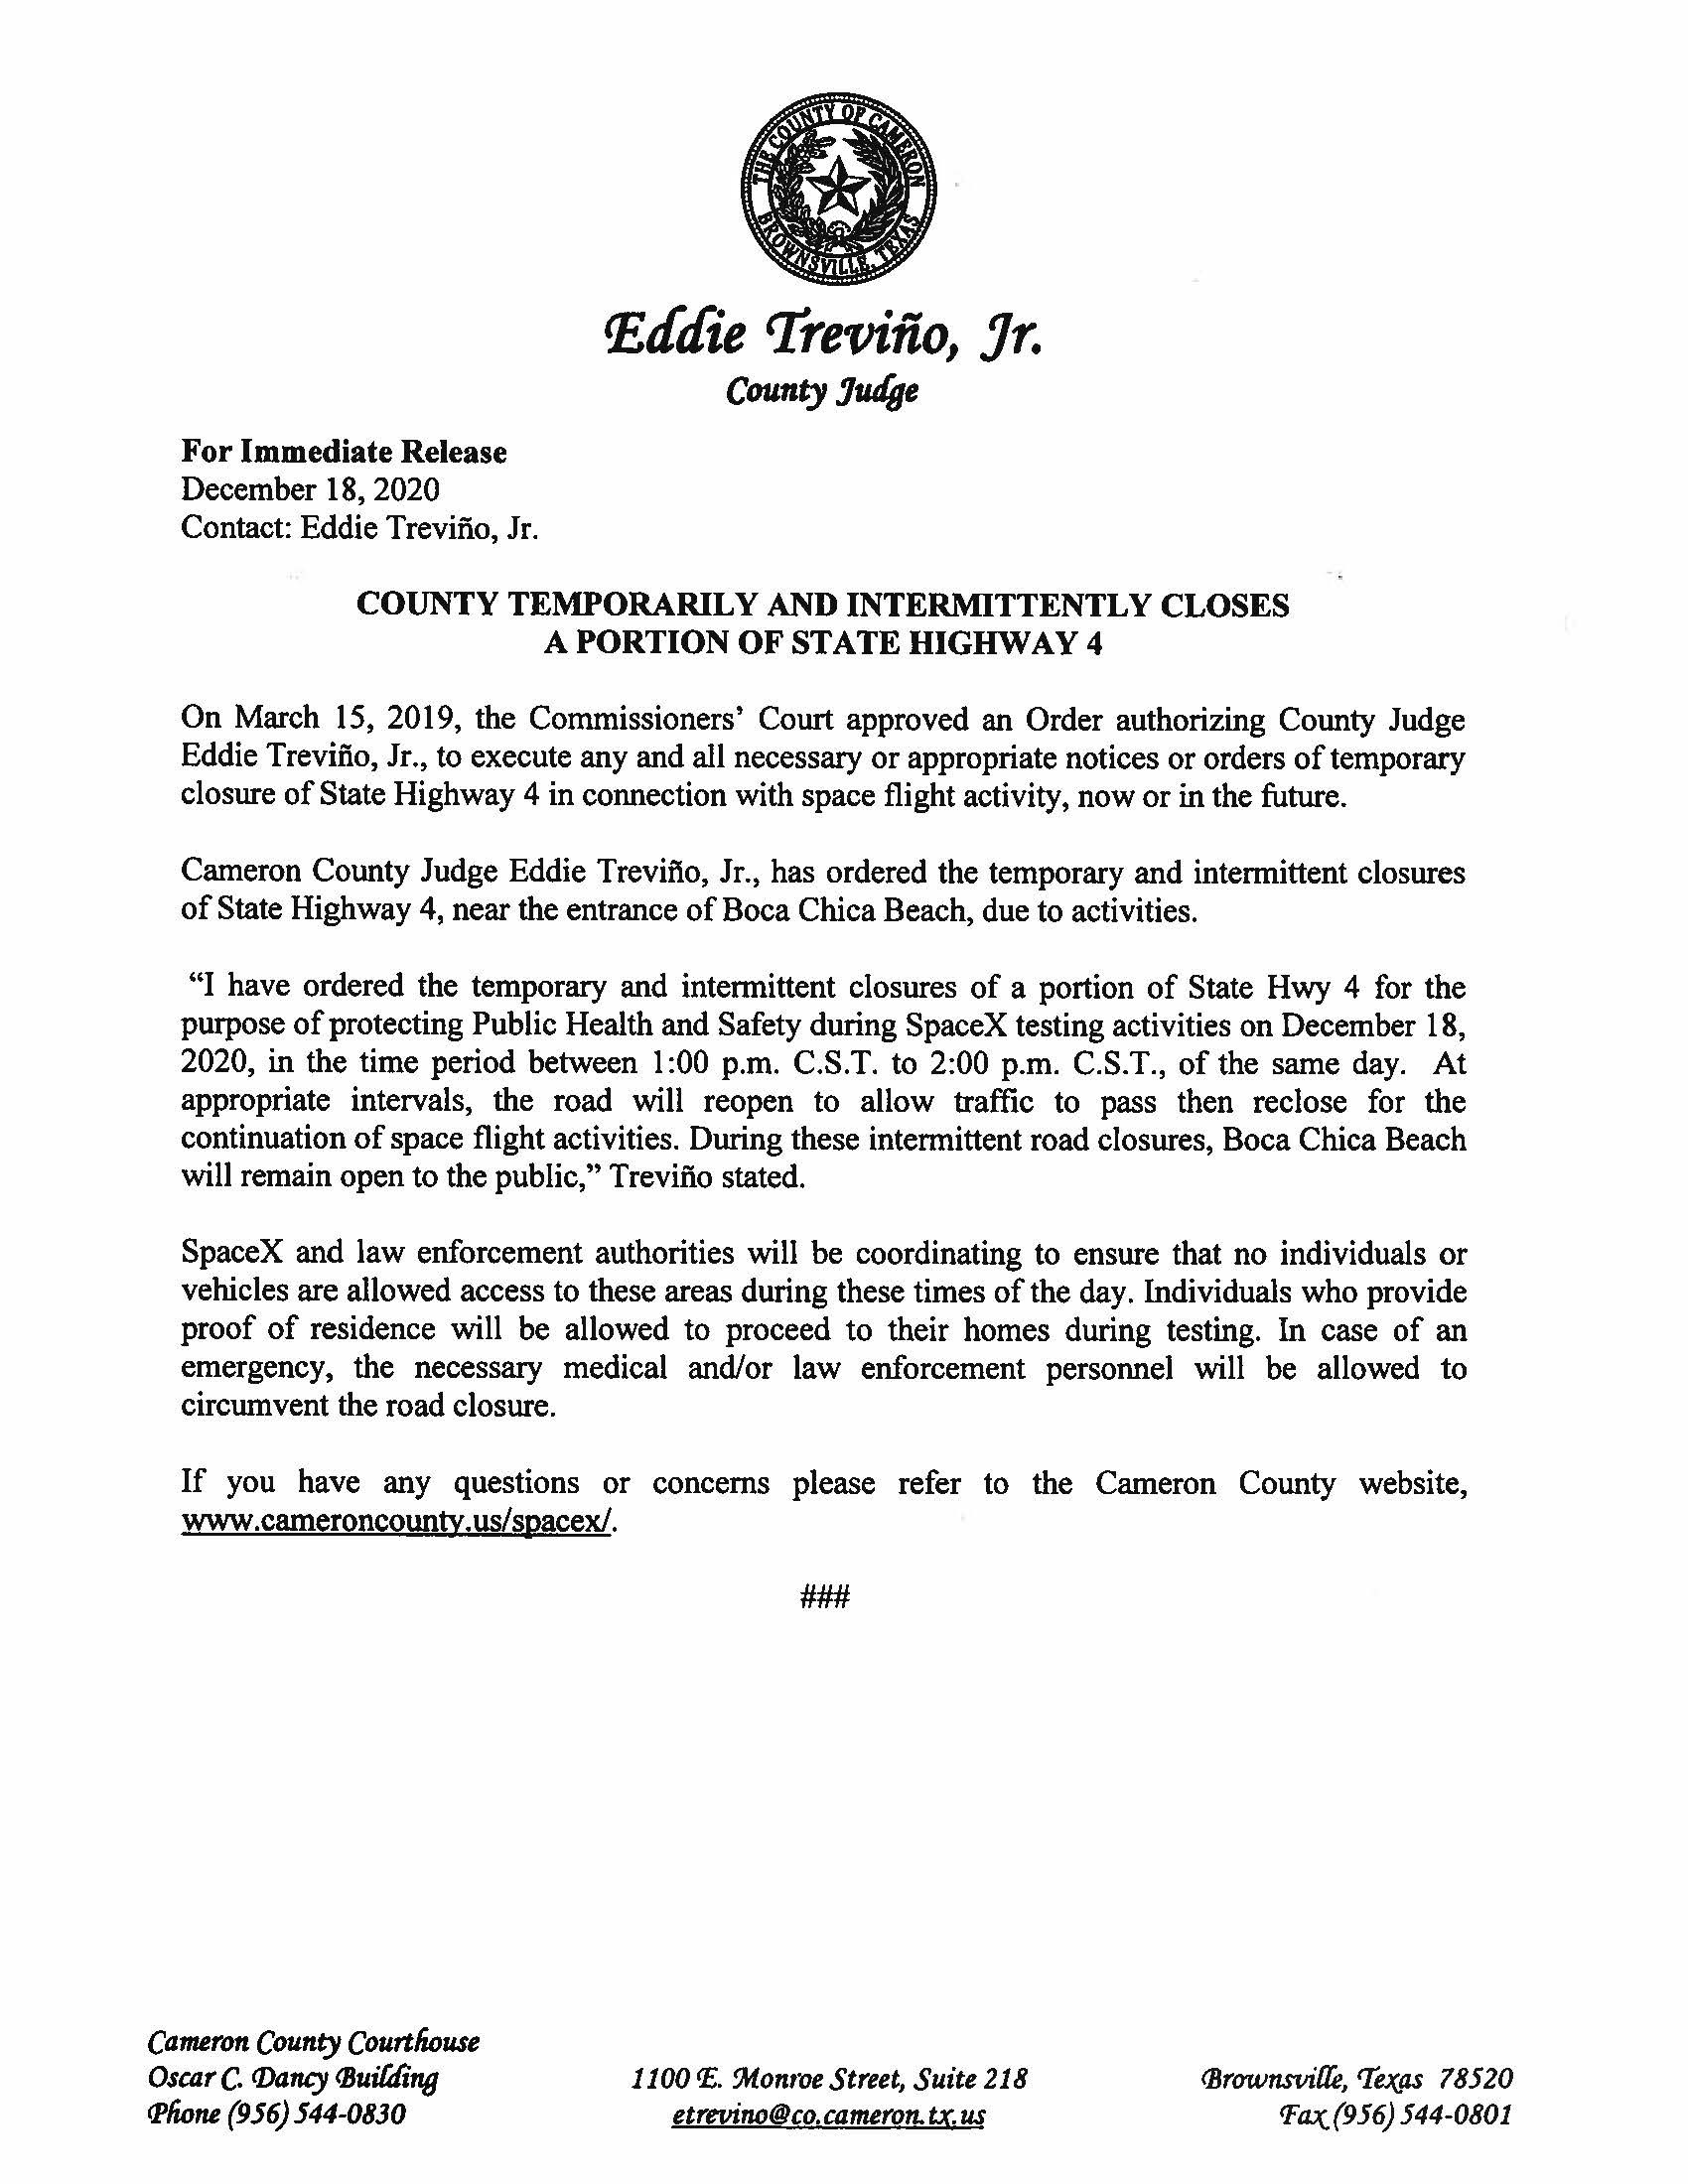 Press Release English And Spanish.12.18.20 Page 1